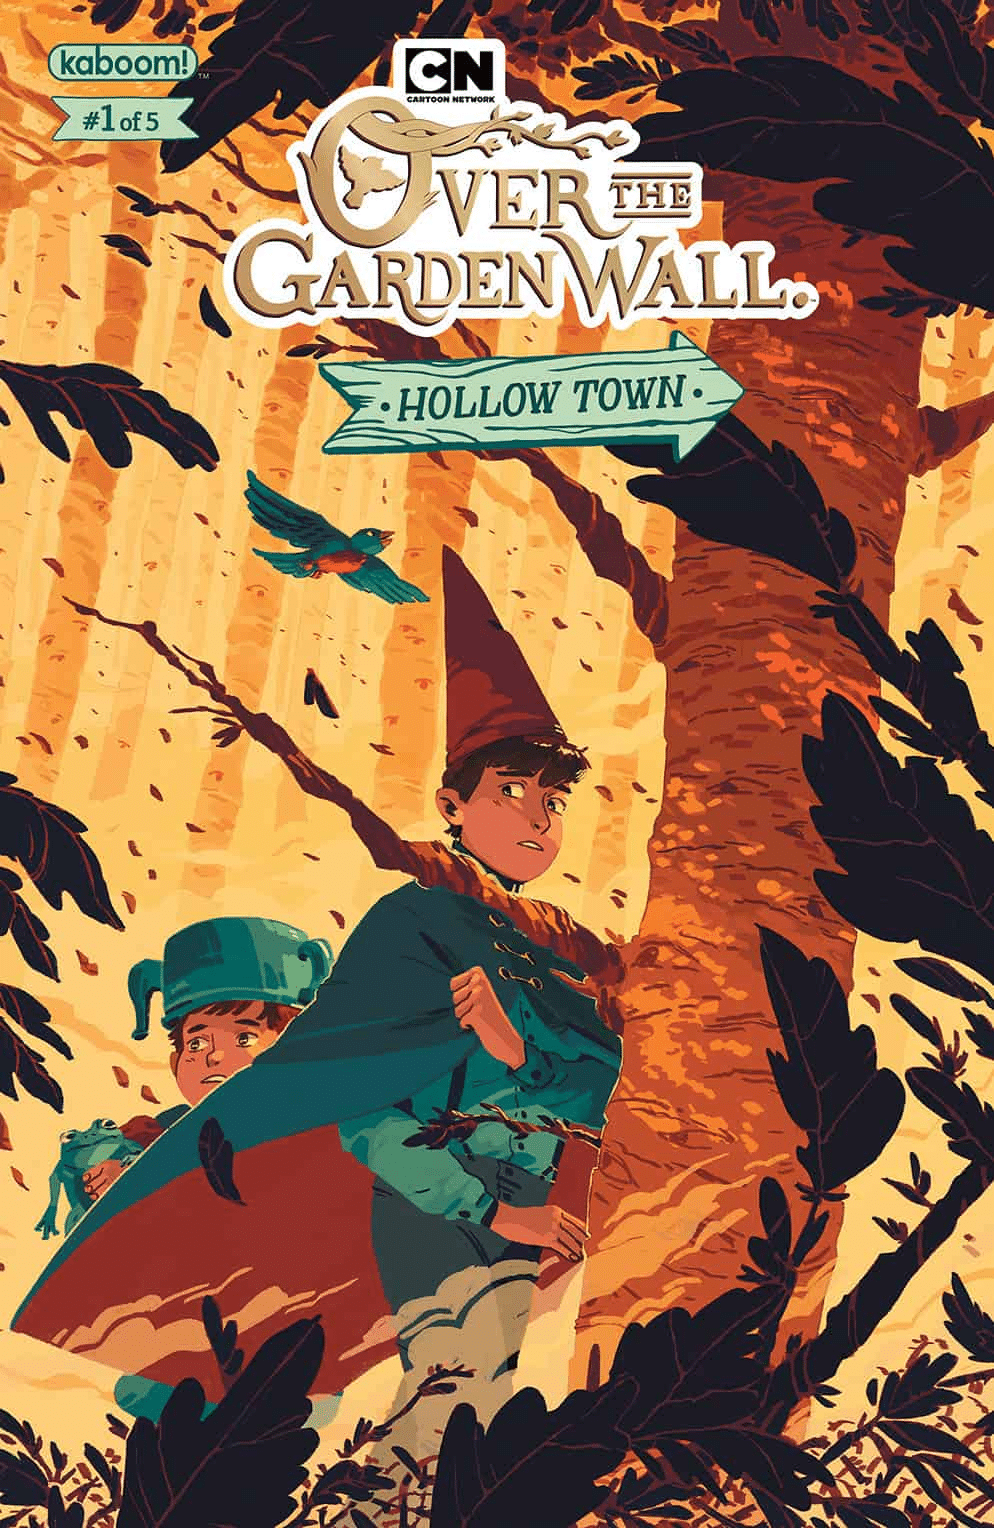 Over The Garden Wall Hollow Town Comic Issue One Out Now At Comic Stores Across The United States